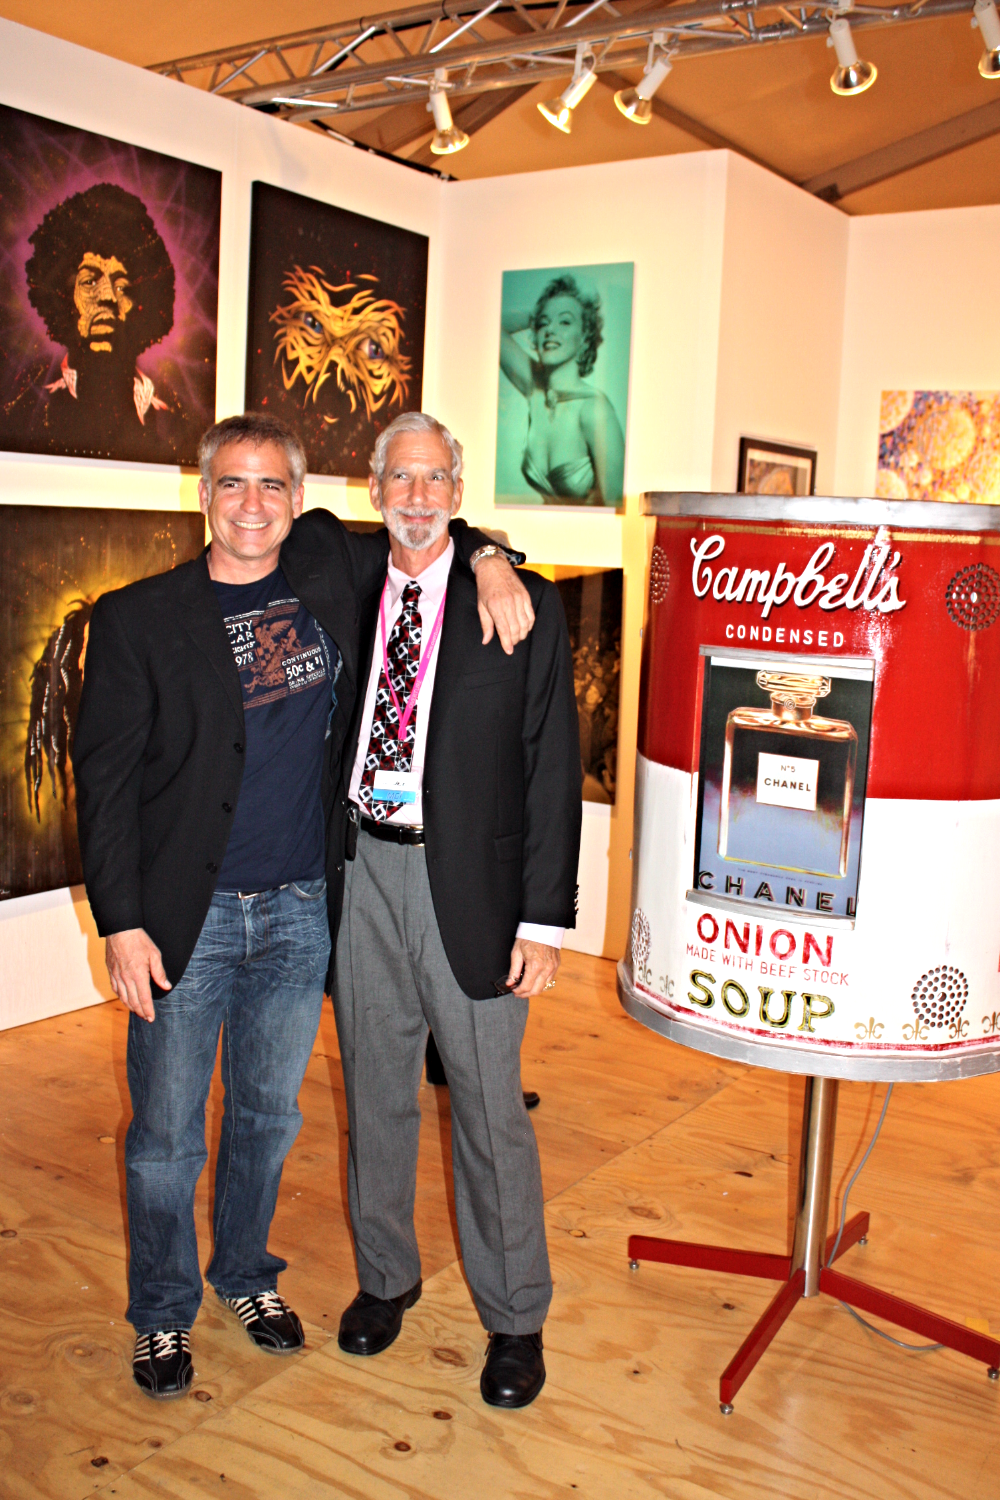 With Steve Steele Overture exhibit